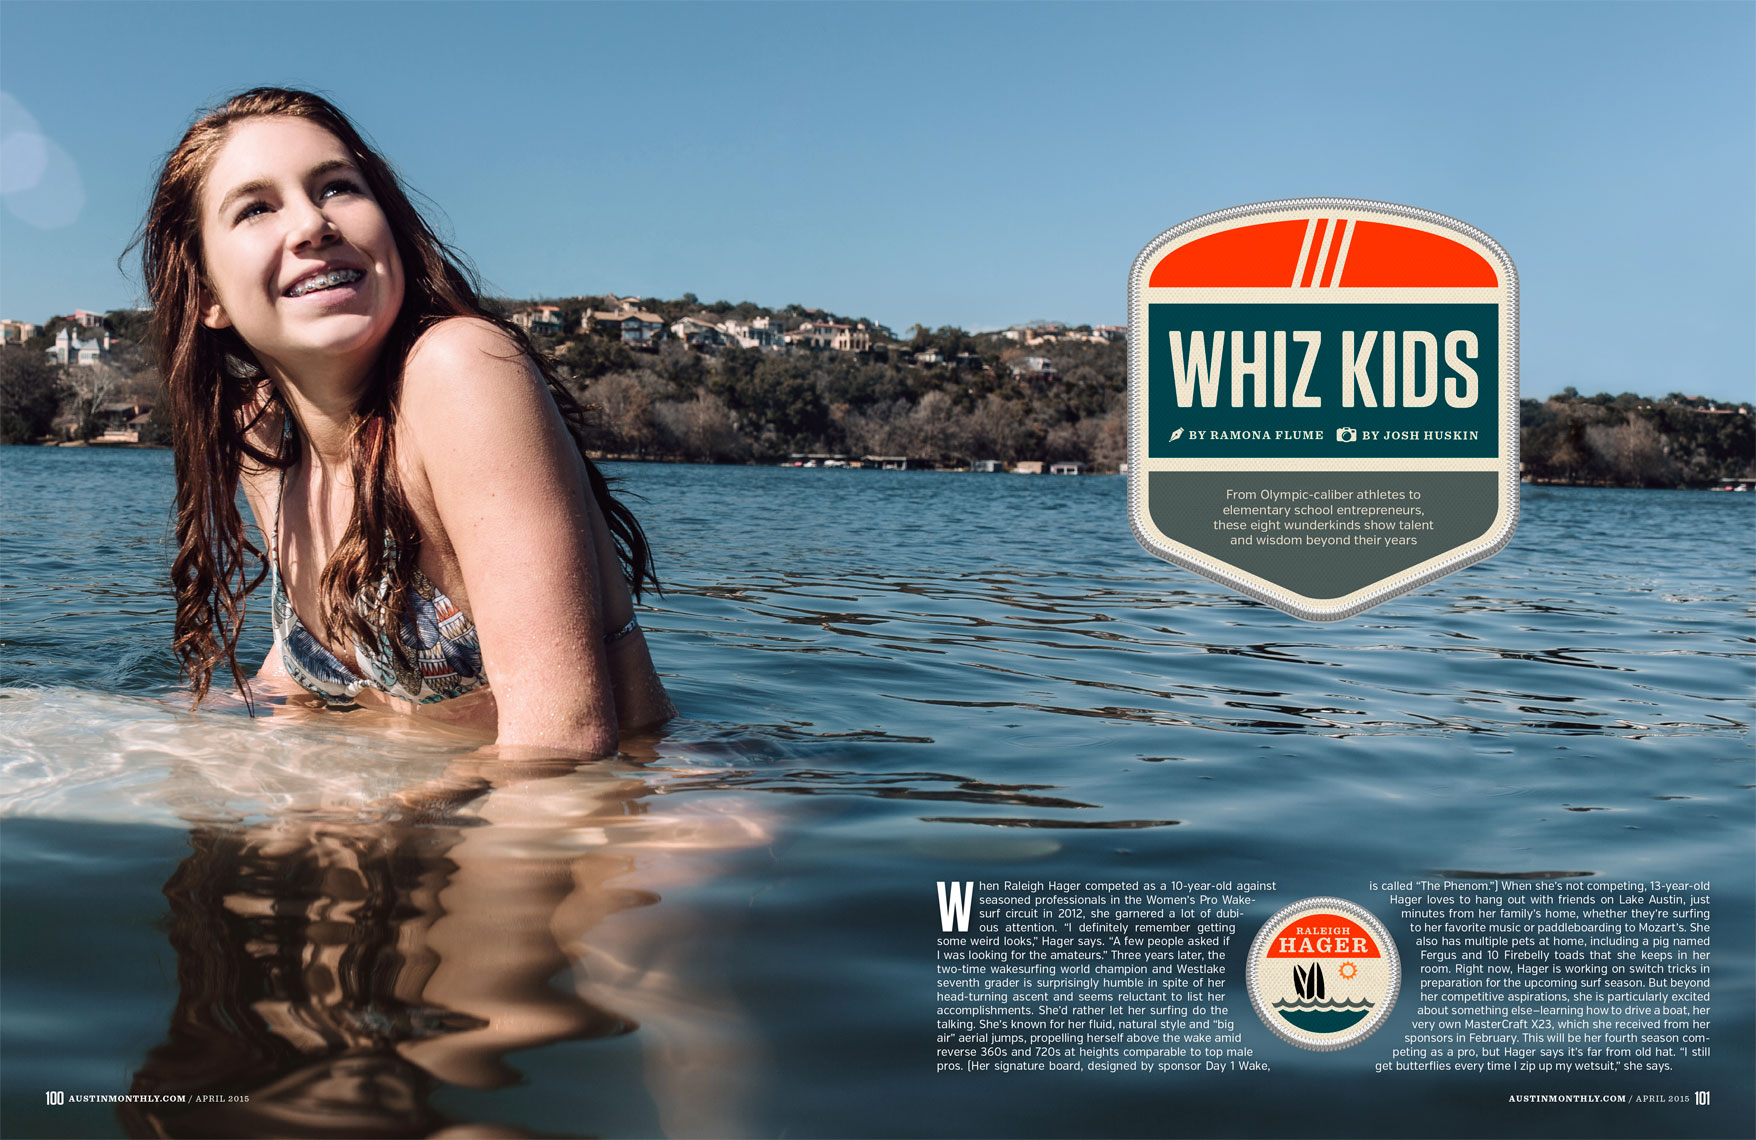 100-107_FEATURE_WhizKids_APR15.indd